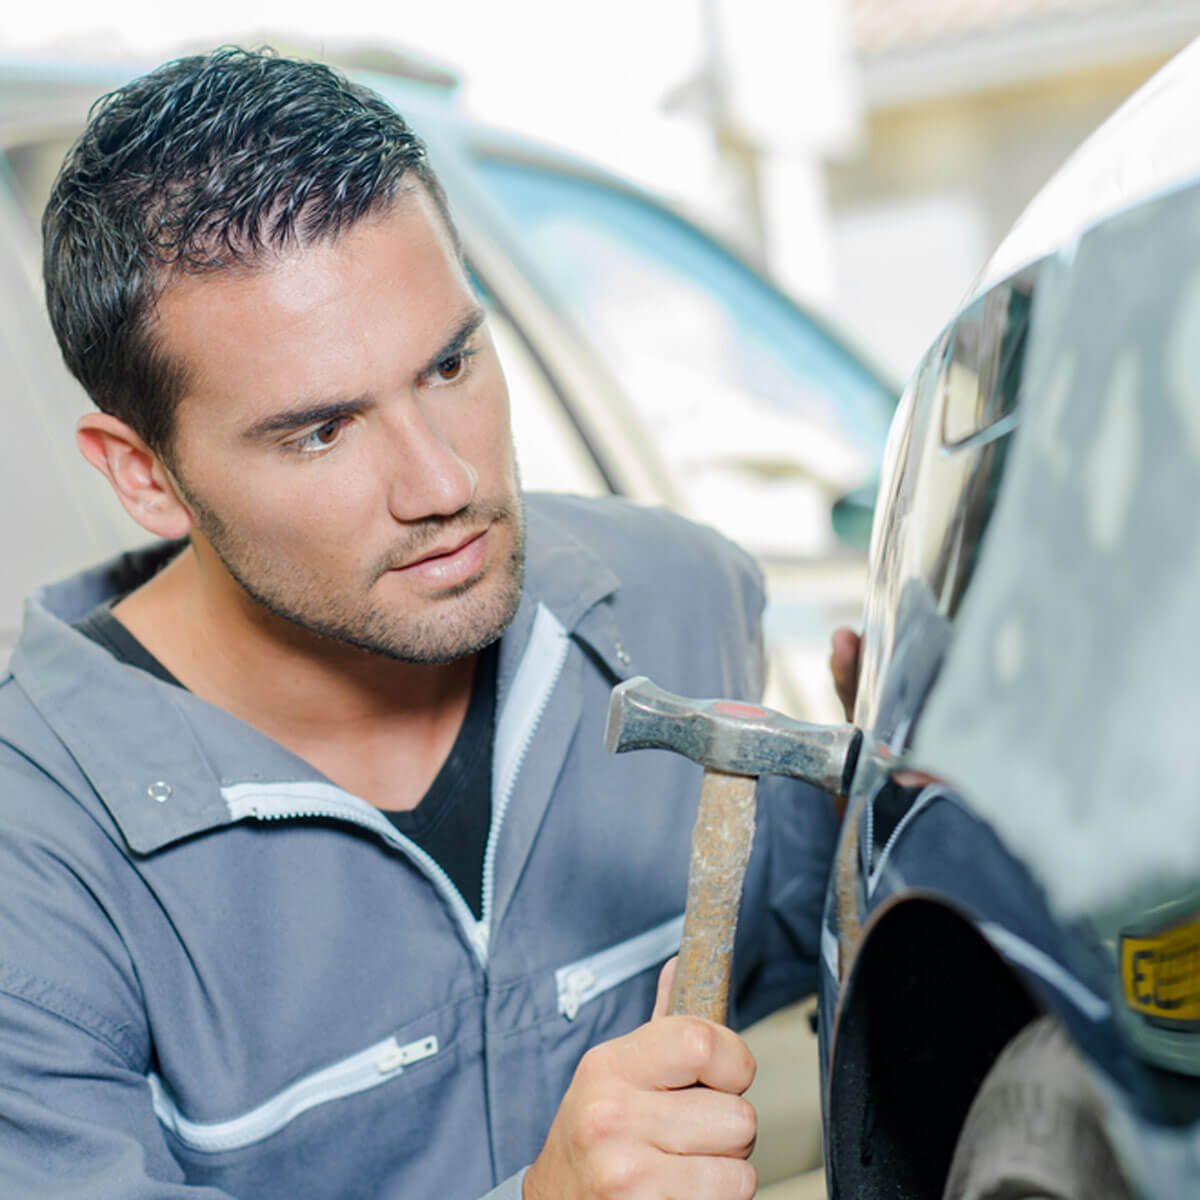 dfh8_shutterstock_277723364 auto mechanic fix car dents